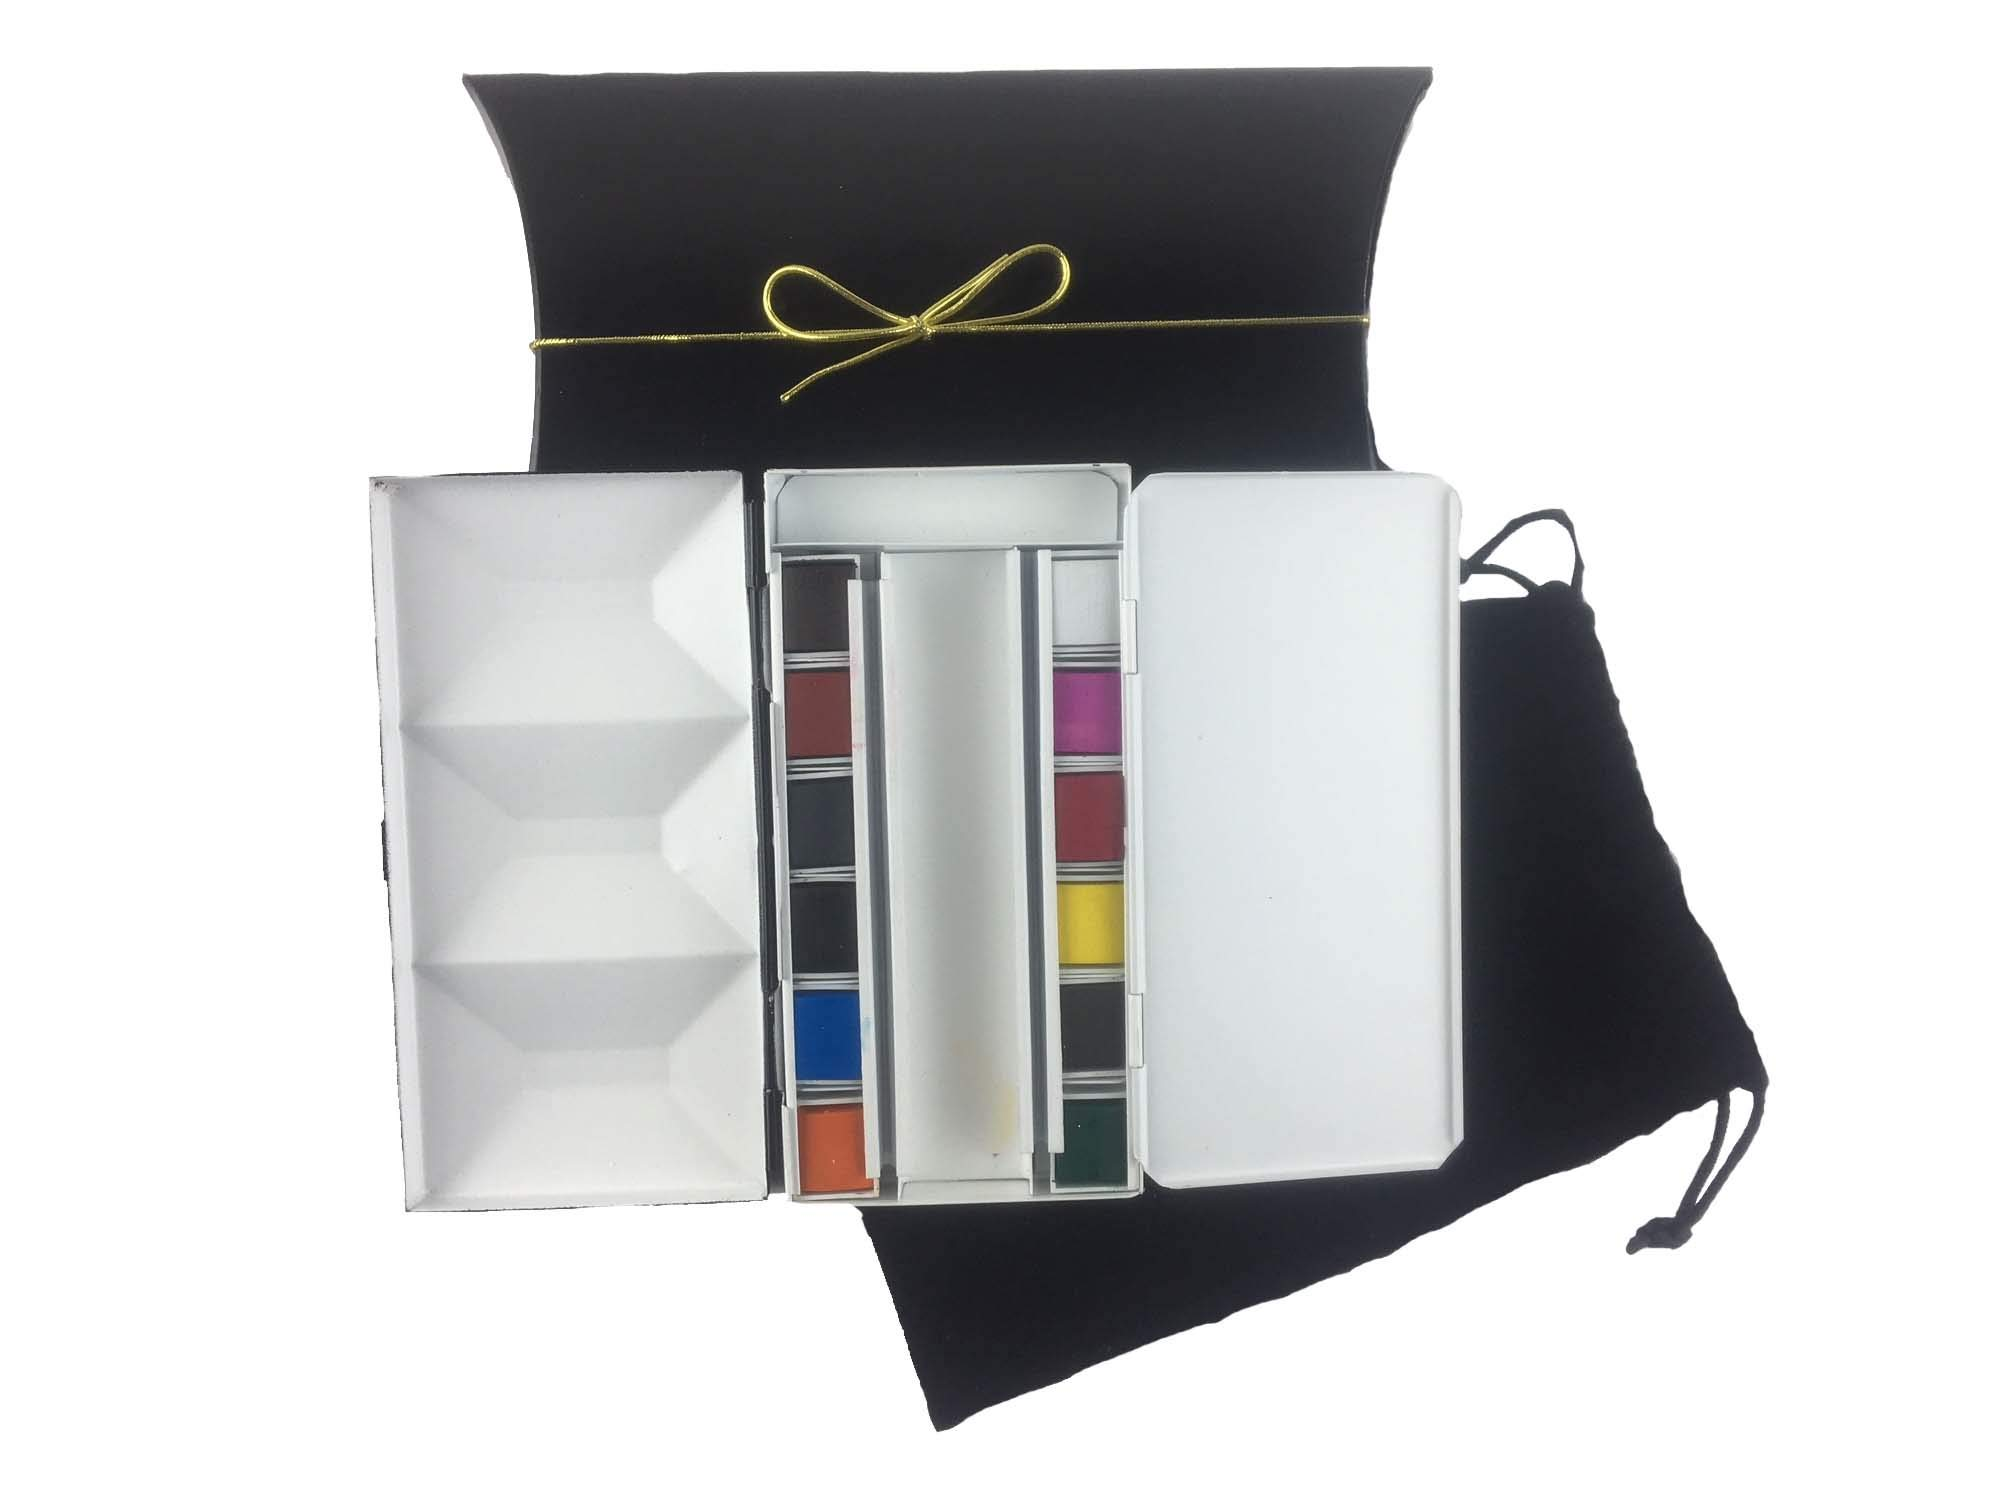 Whiskey Painters Artist Watercolor Art Travel Set of 12 Colors Folding Artist Metal Palette Box Complete Travel Set Hand Made in Italy by Whiskey Painters